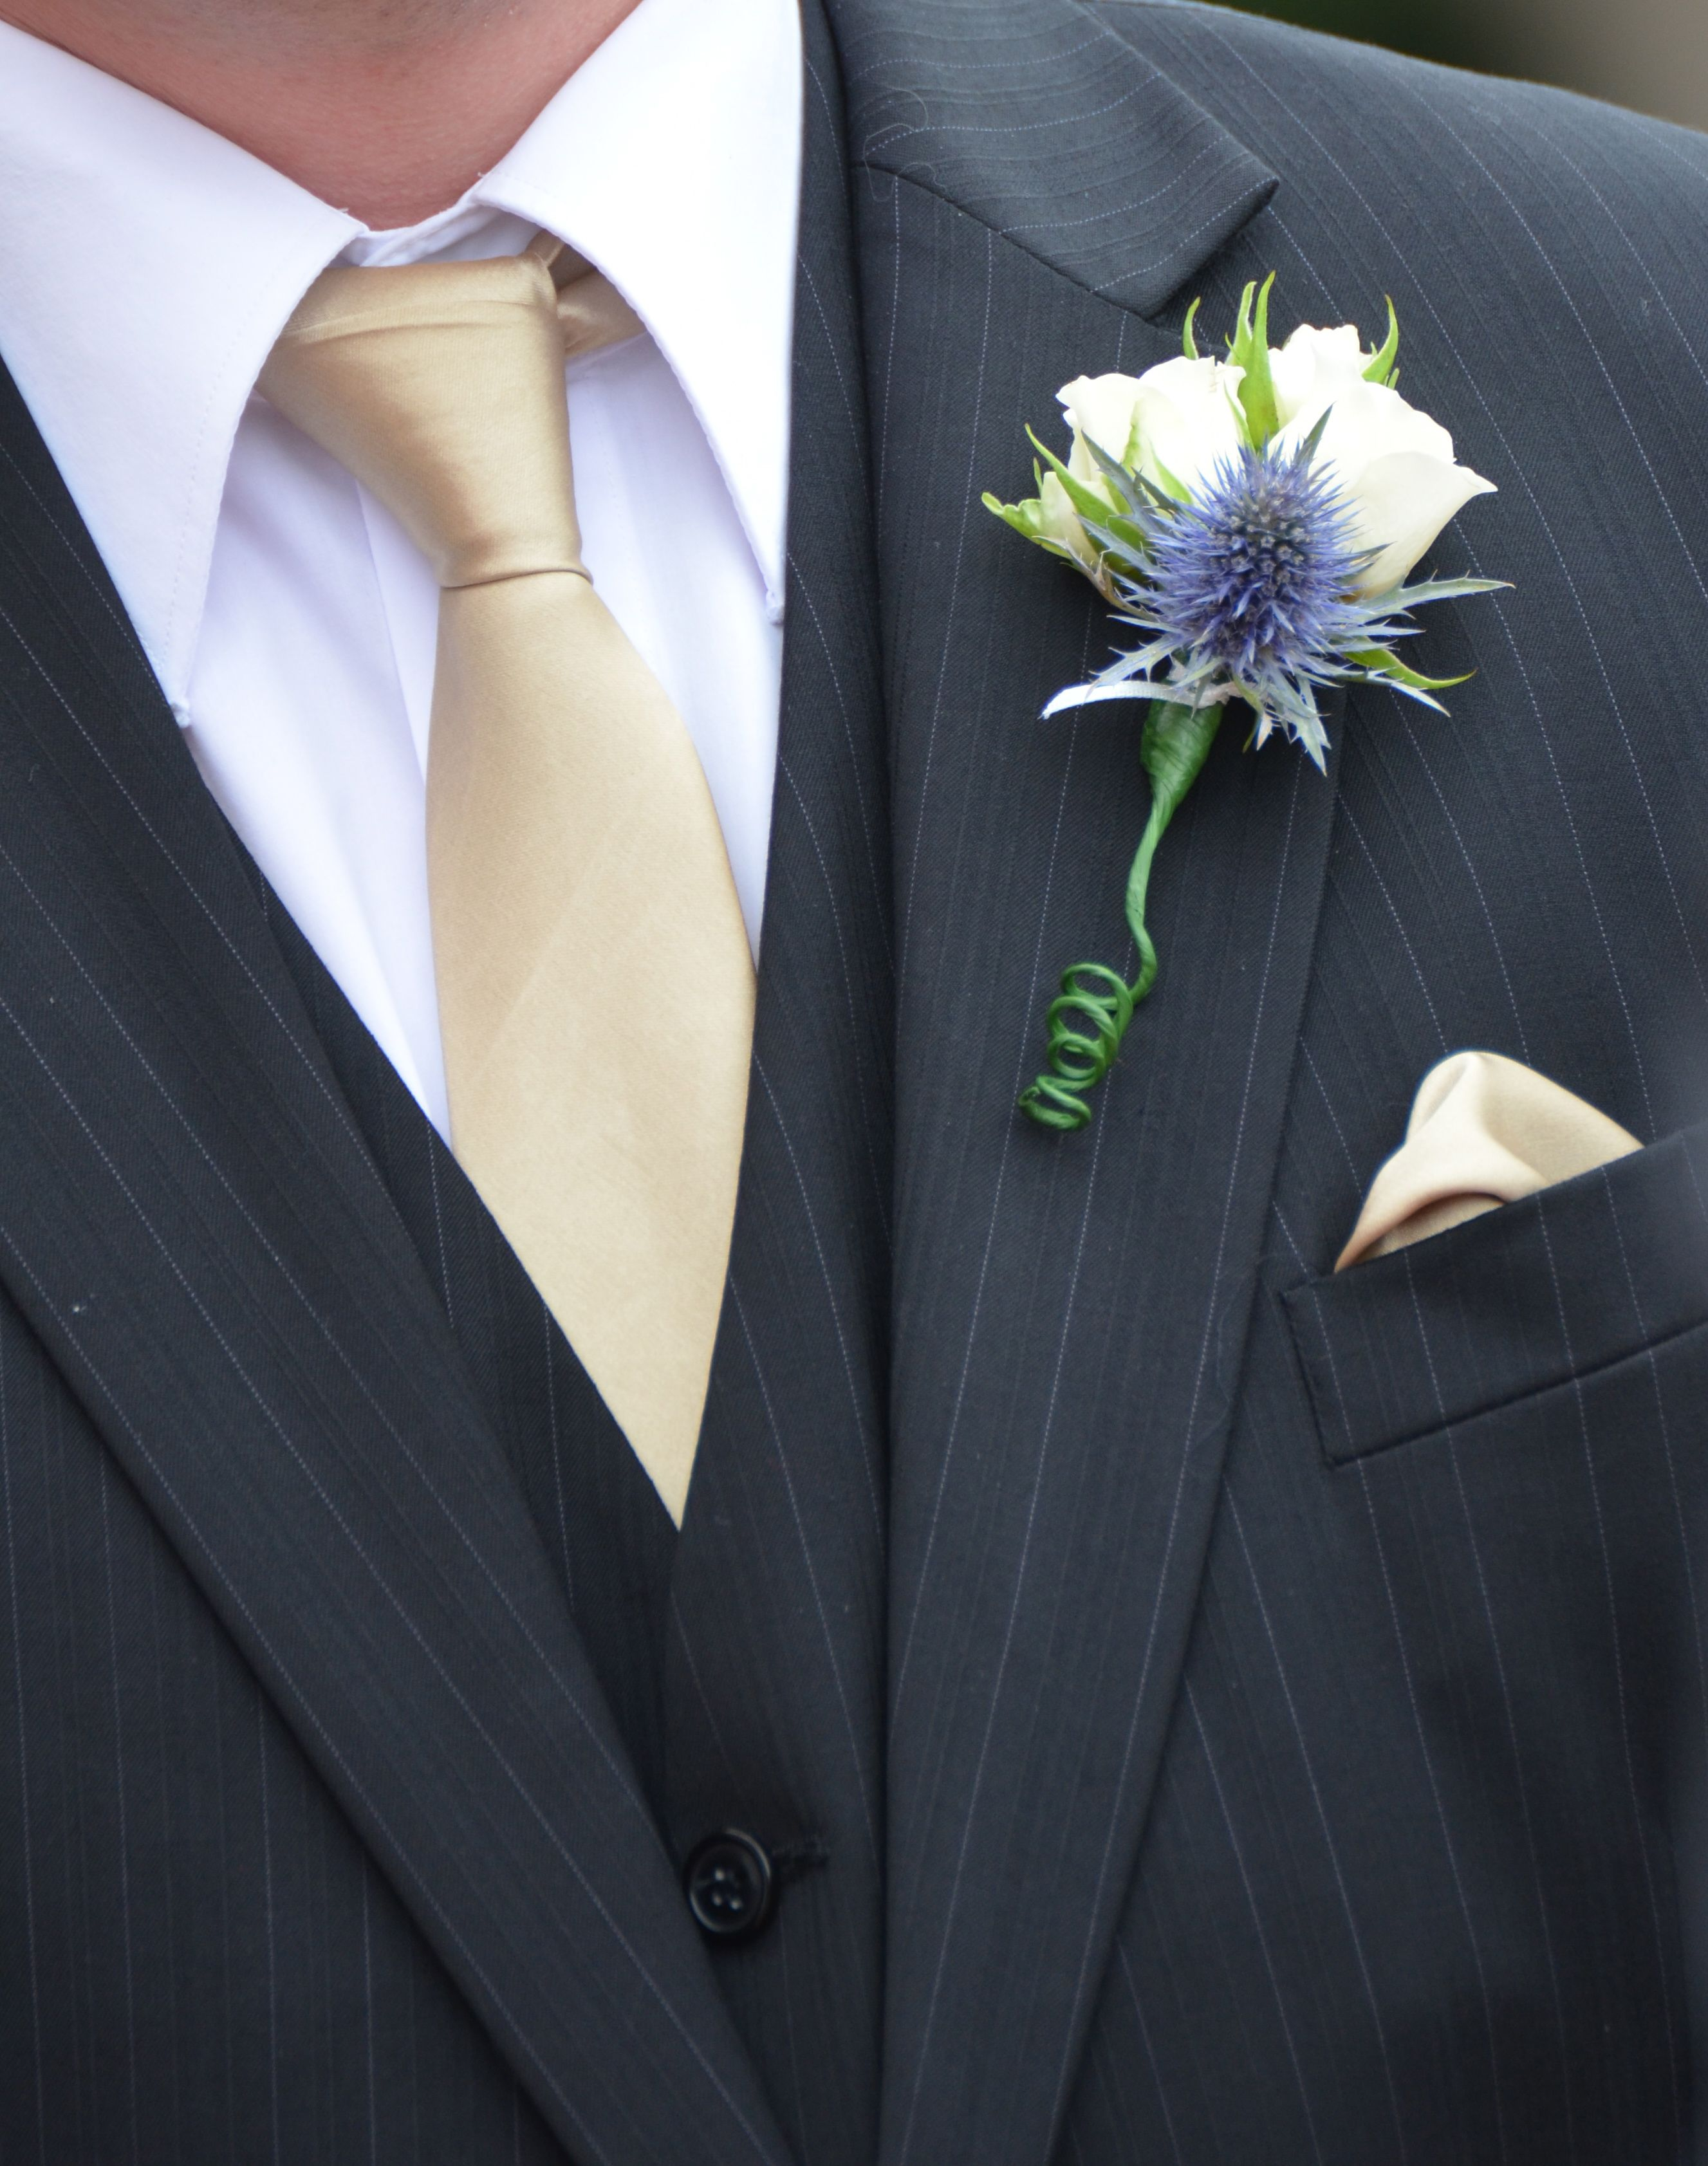 On Hole Flowers Rose And Sea Holly For Other Members Of Wedding 7 Grooms Separate 8 In Total 1 Best Man 2 Men